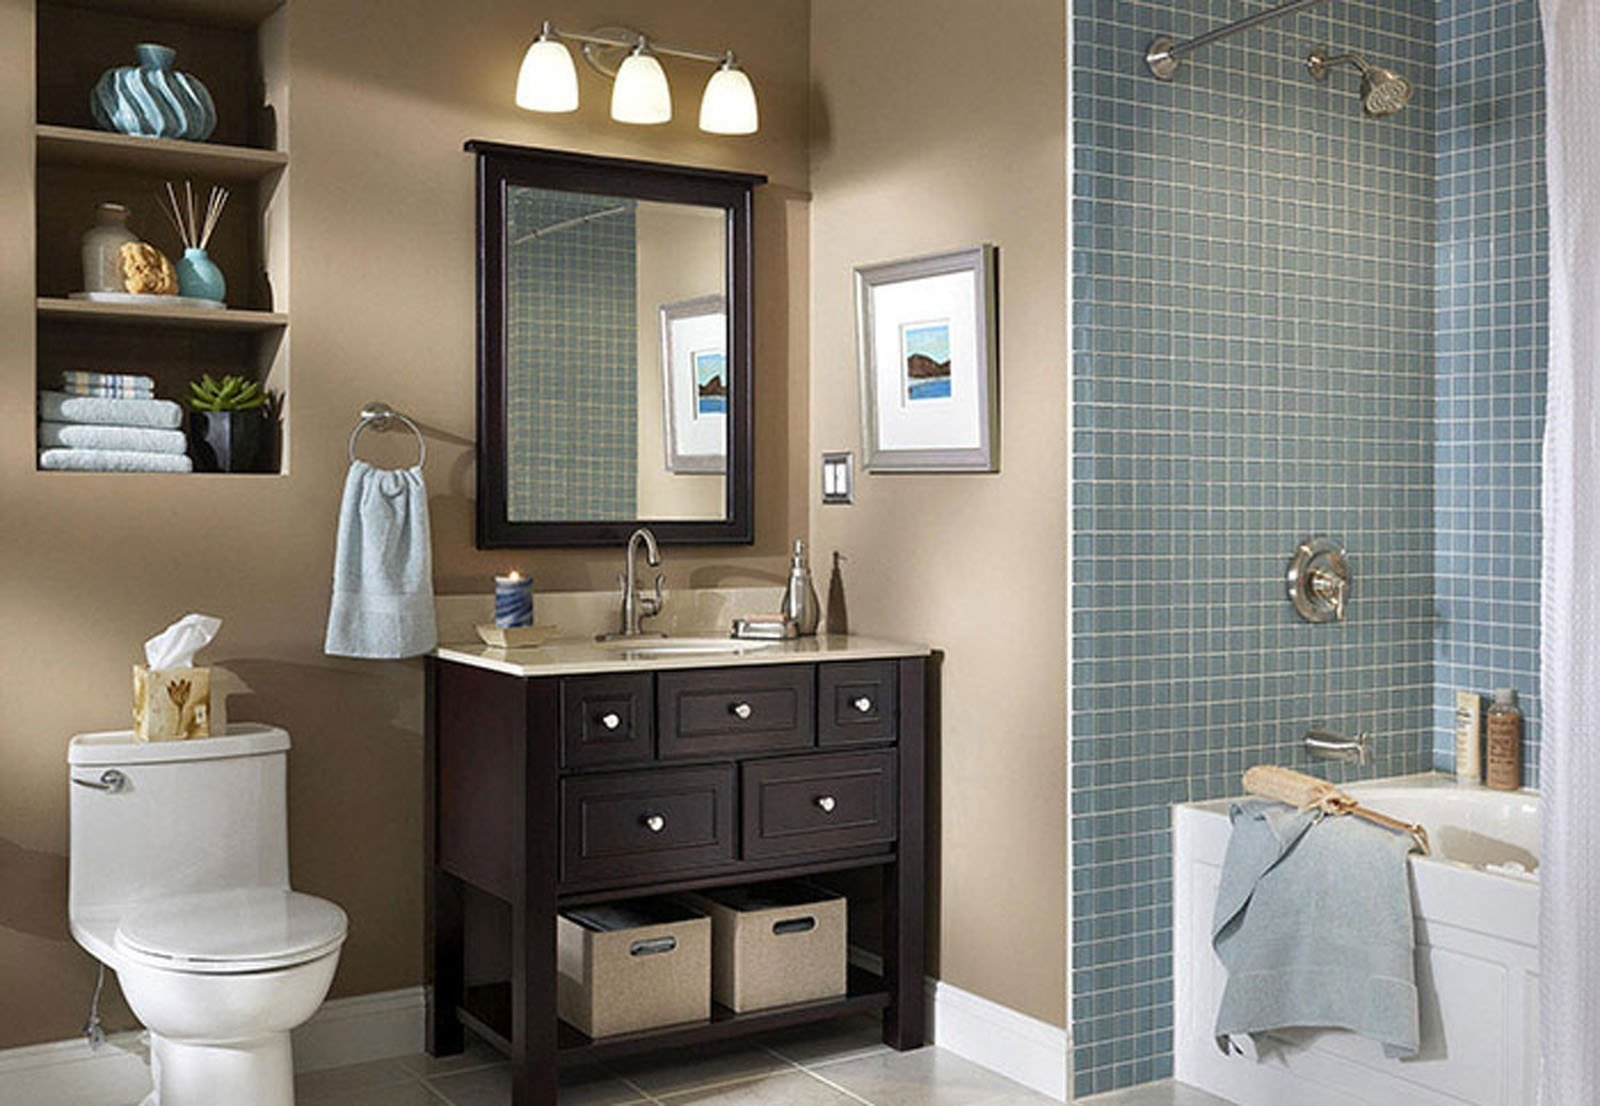 10 Pretty Paint Ideas For Small Bathrooms amusing bathrooms design small with showers only bathroom ideas on 2021